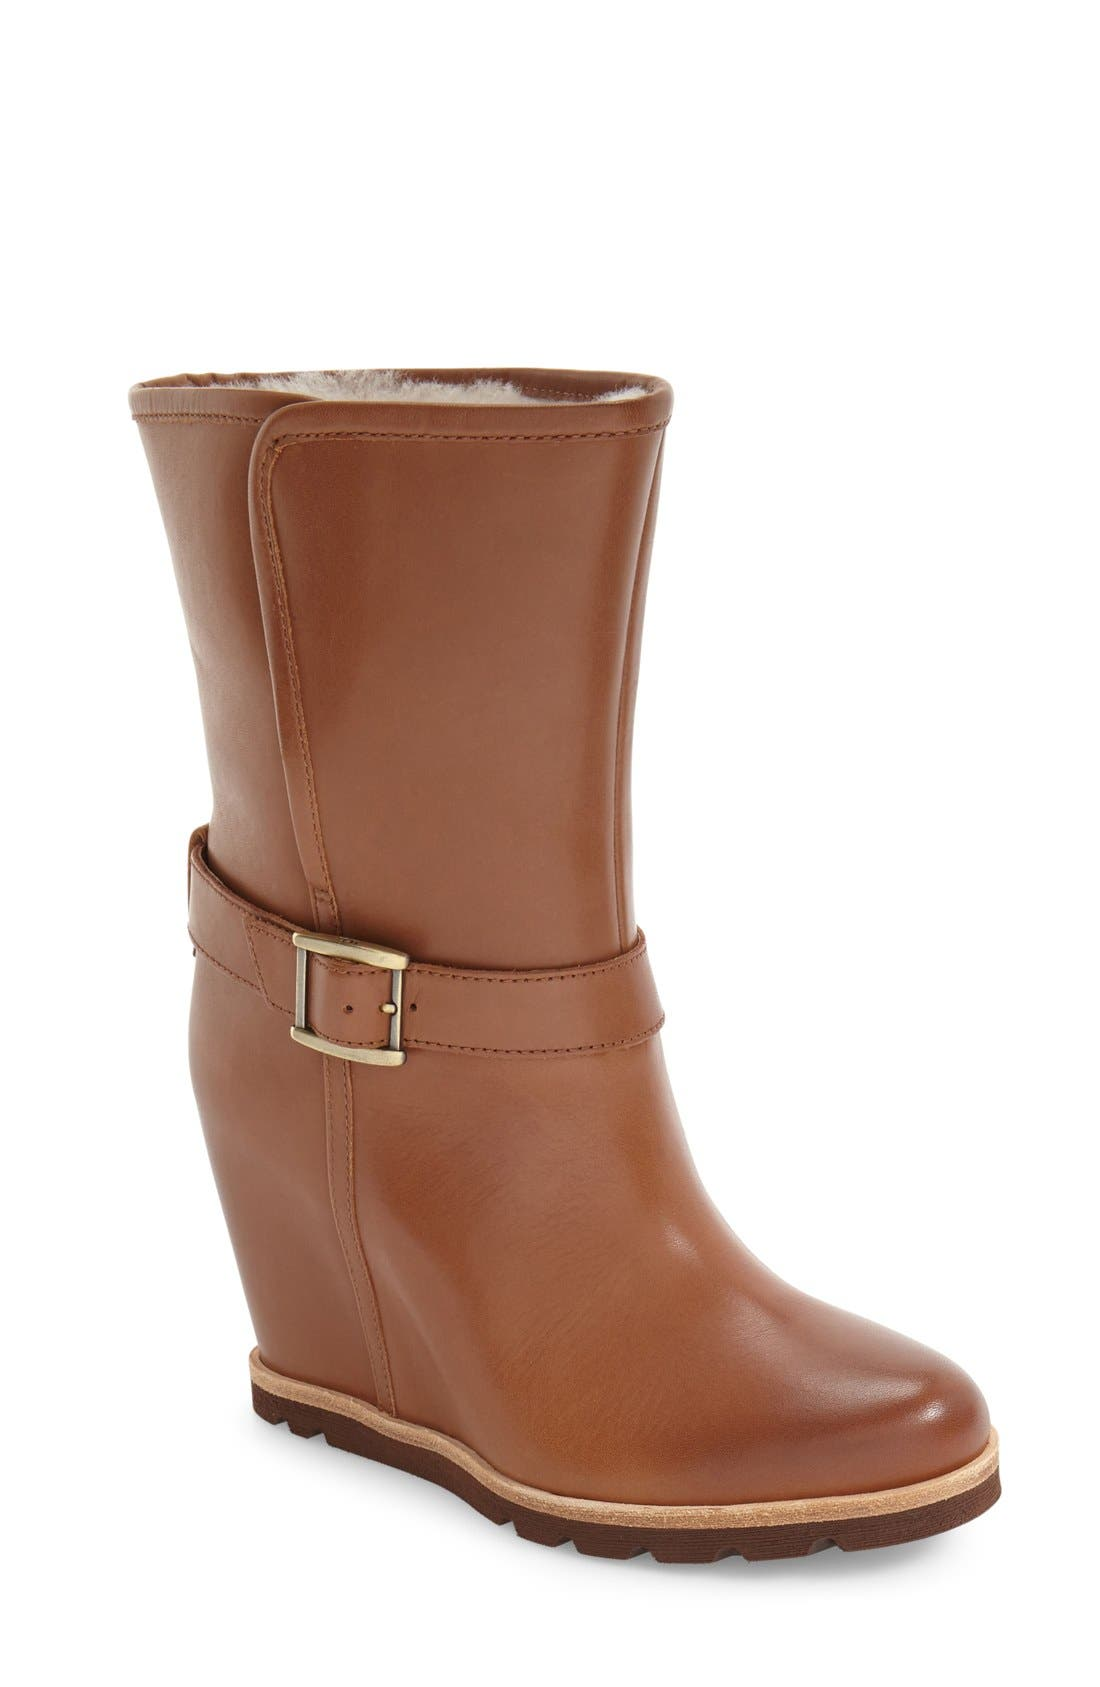 Main Image - UGG® 'Ellecia' Wedge Boot (Women)